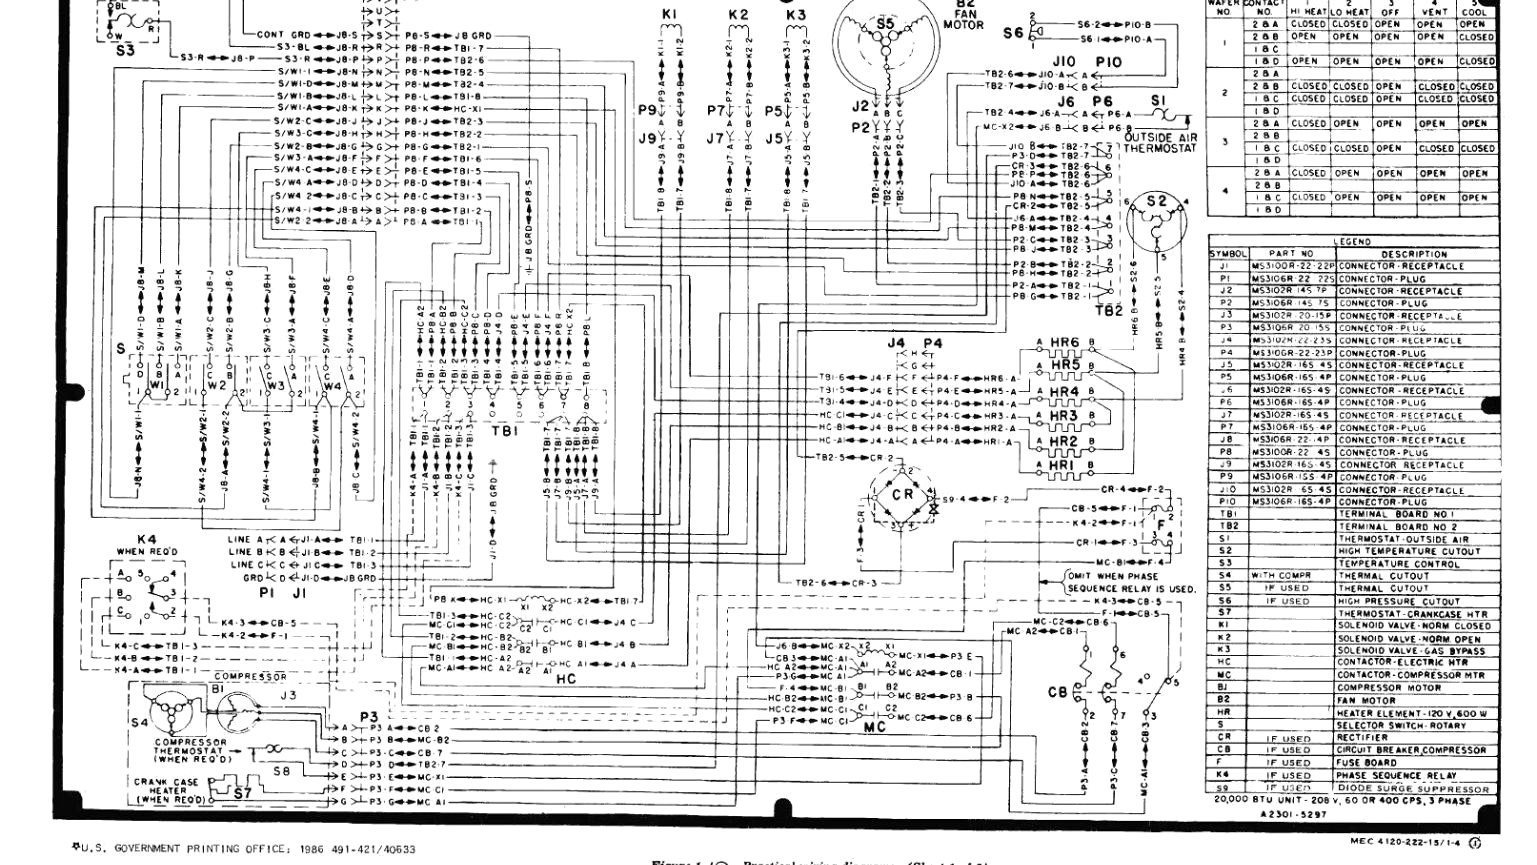 Trane Wiring Schematic | Wiring Diagram - Trane Rooftop Unit Wiring Diagram